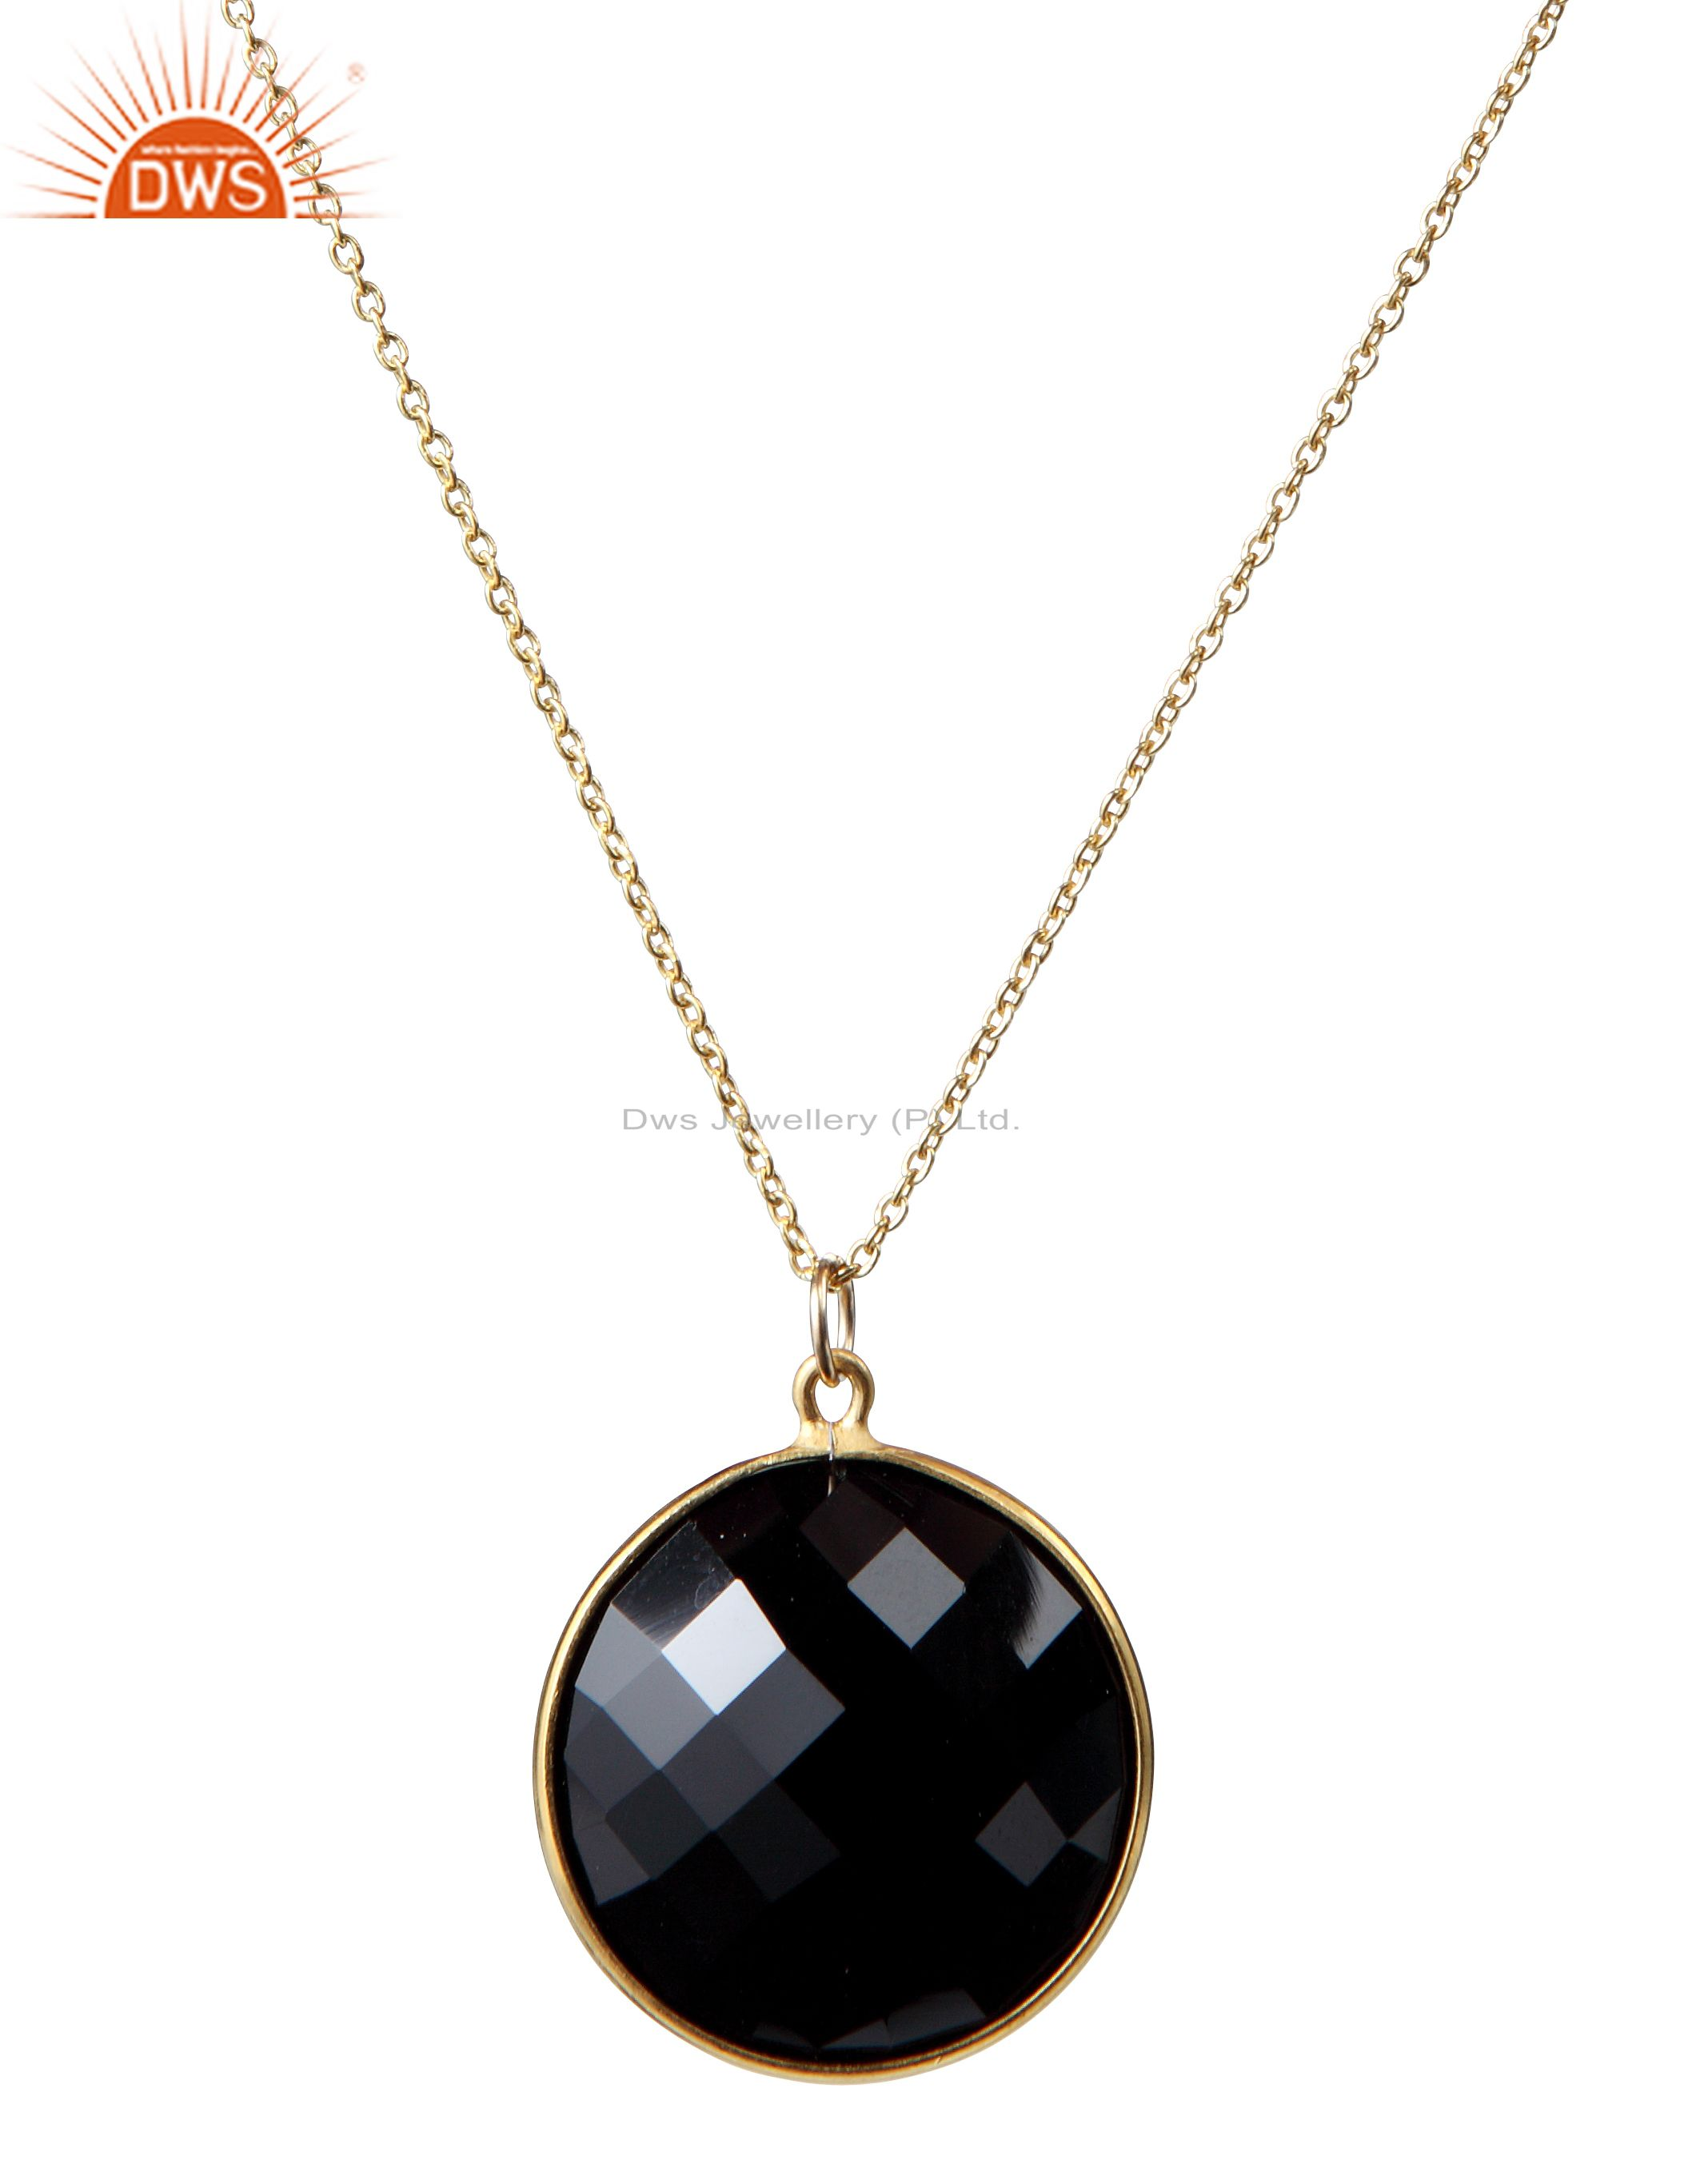 18k yellow gold plated sterling silver black onyx bezel set pendant with chain